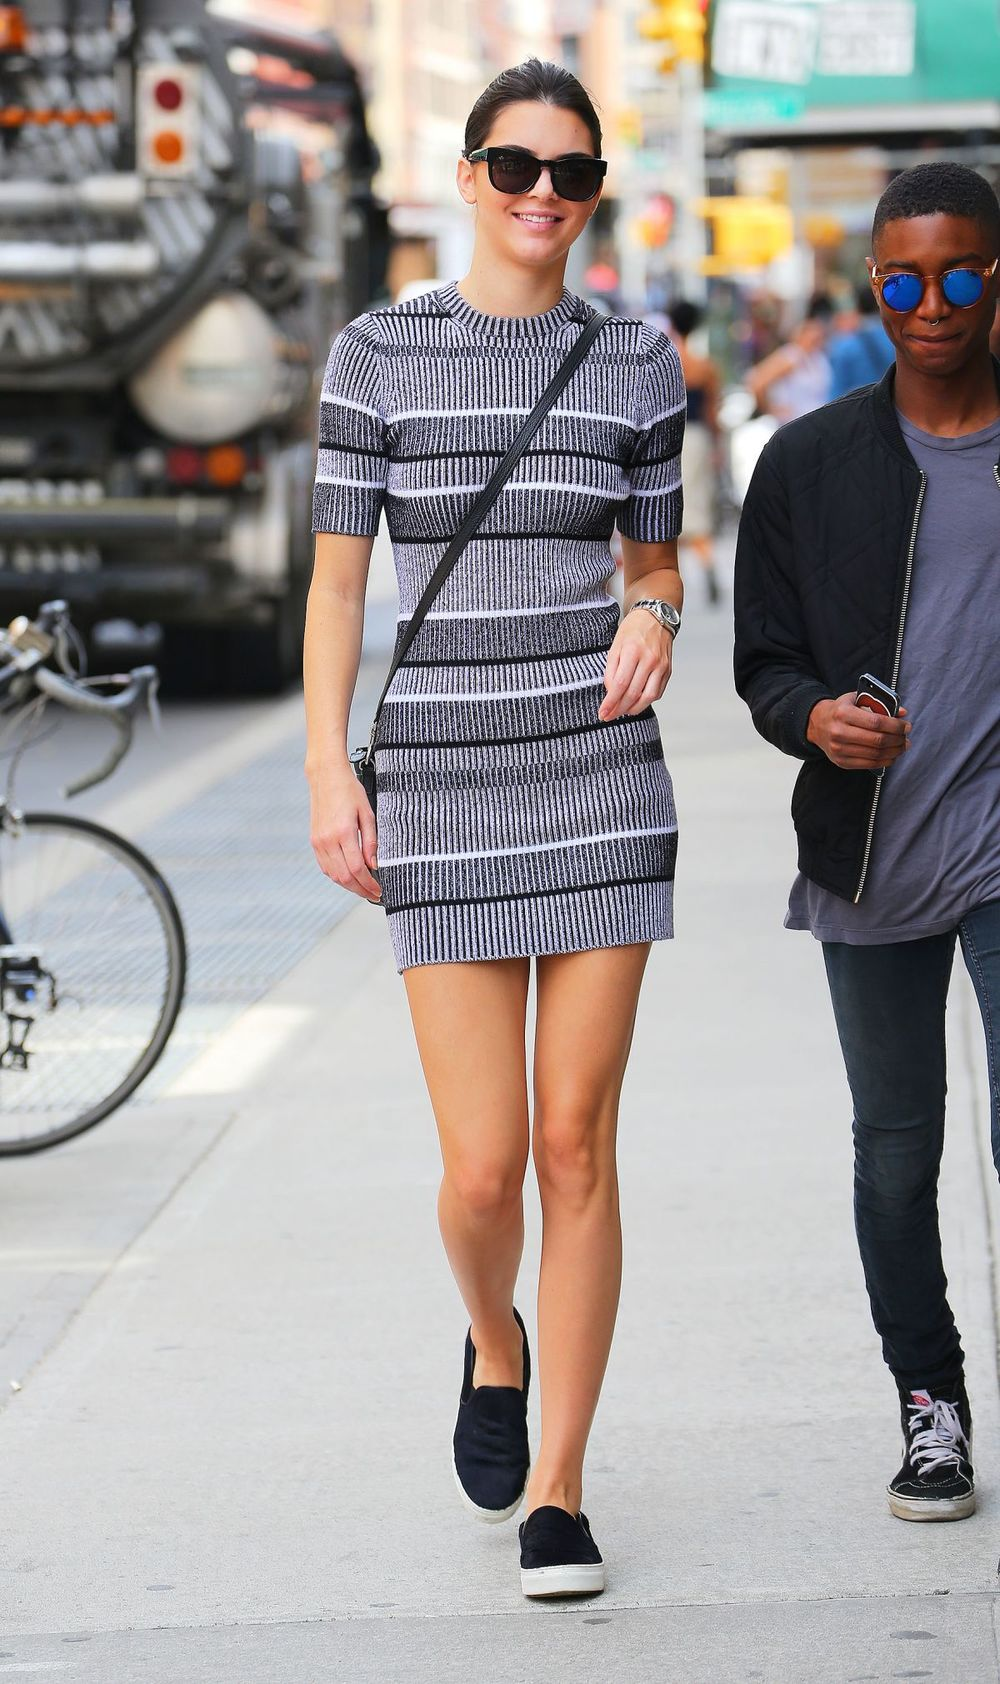 kendall-jenner-out-in-nyc_18.jpg